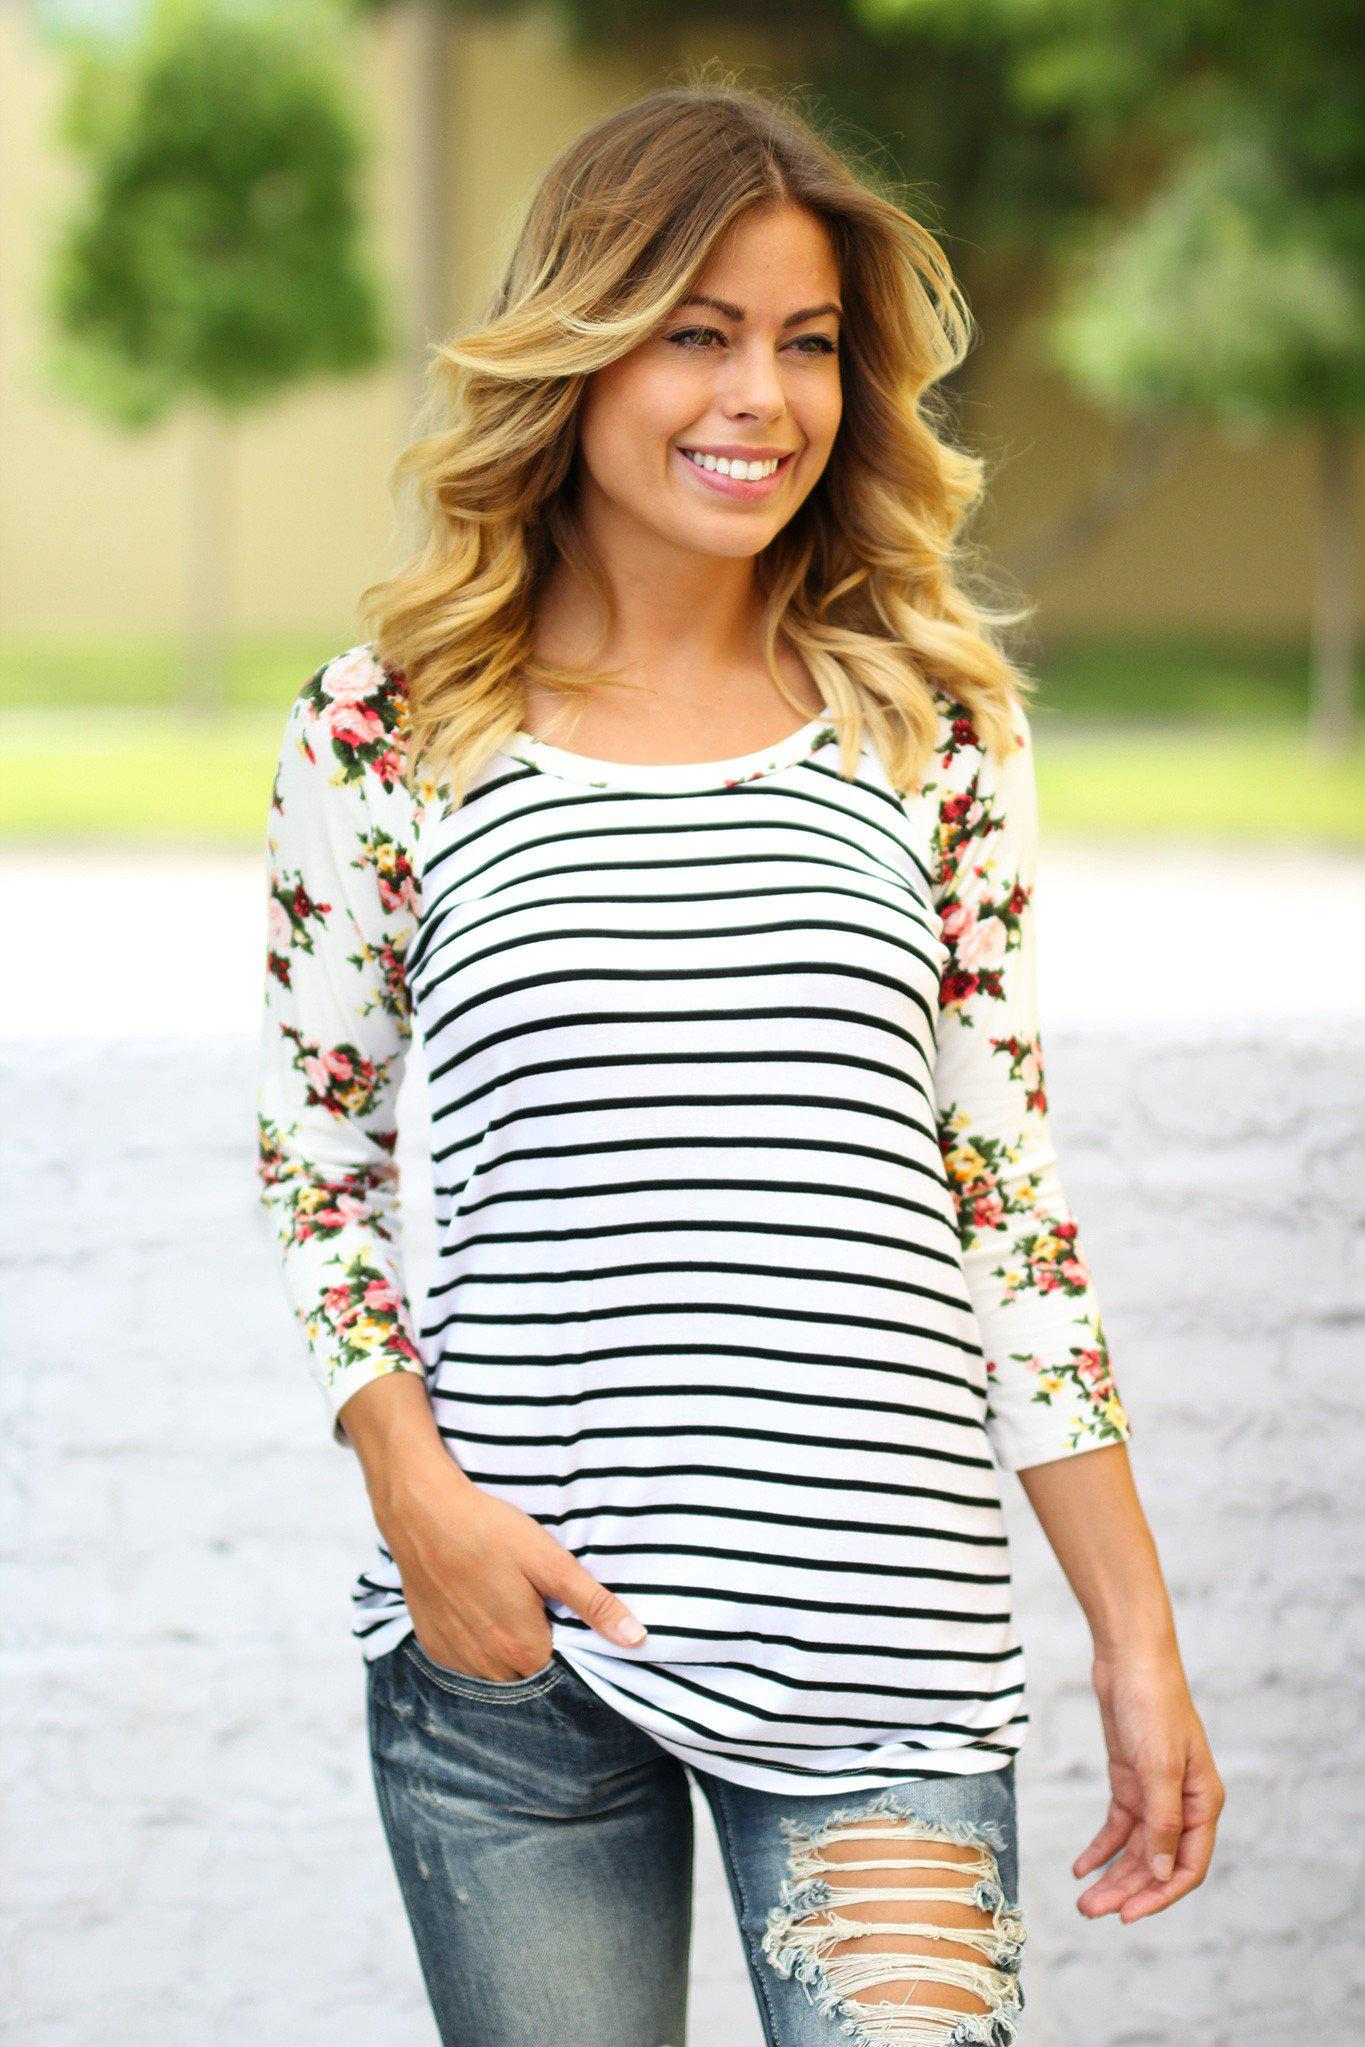 White Striped top with Floral Sleeves